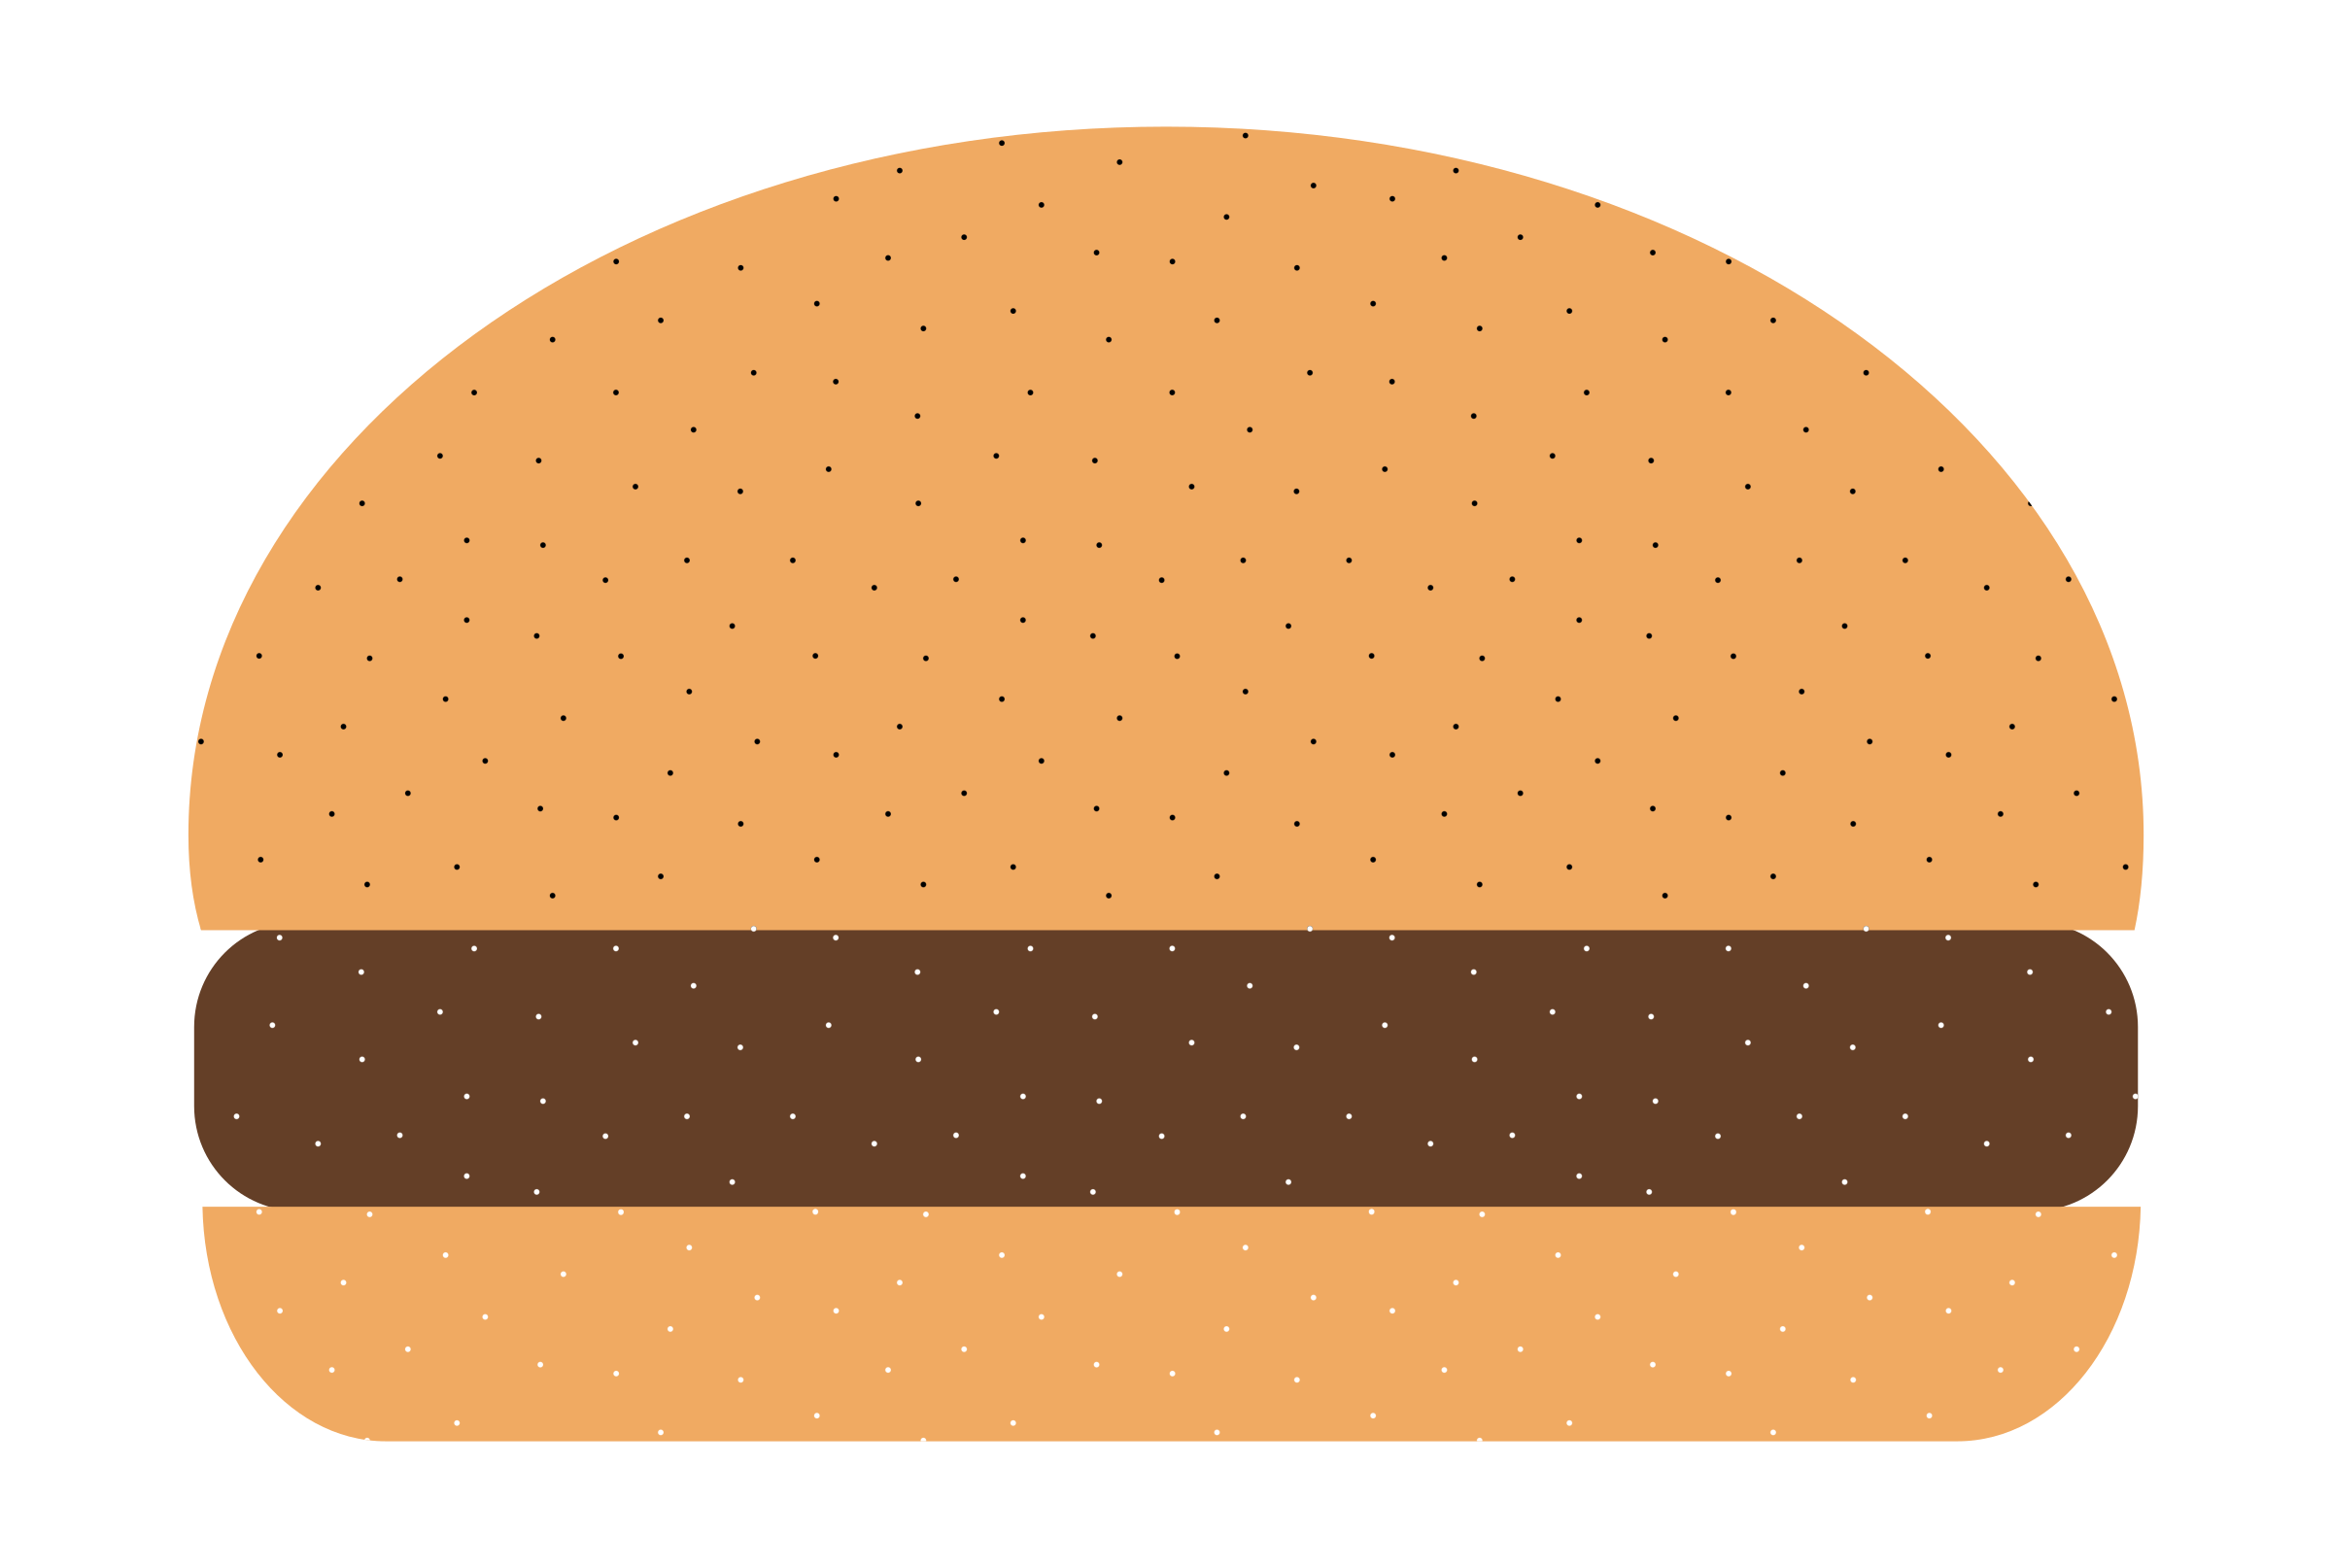 Burger clipart fast food. Free burgers cliparts download